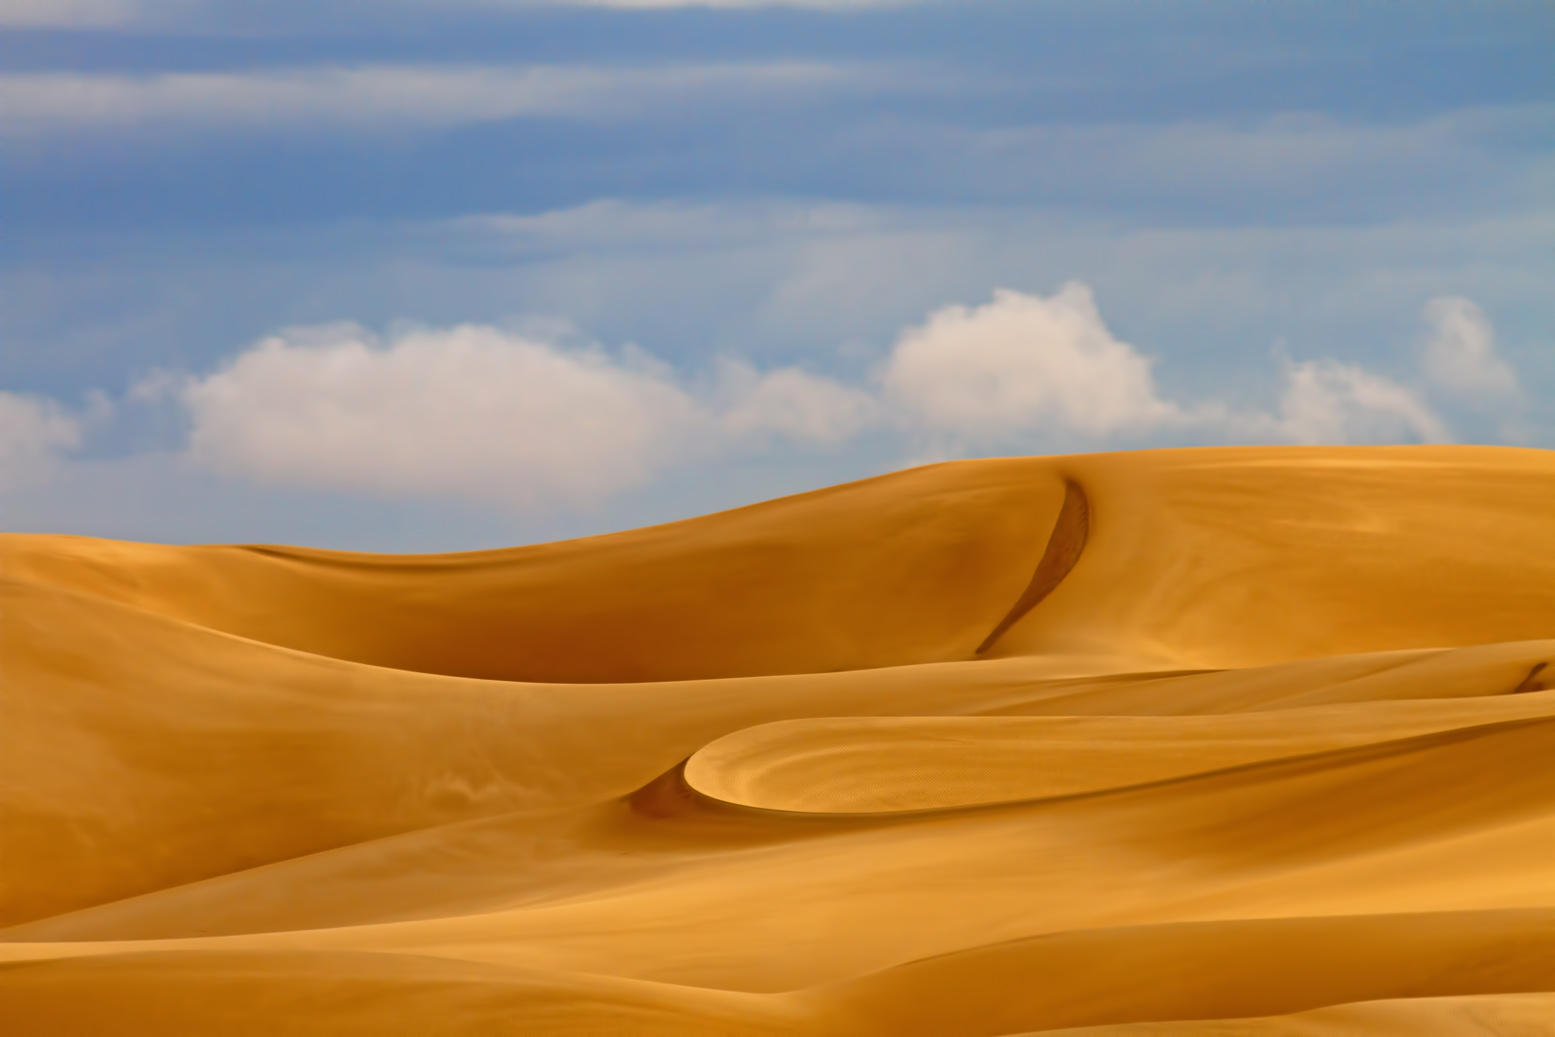 Imperial Sand Dunes, a photograph by Norma Woodward (MG: November 2013)